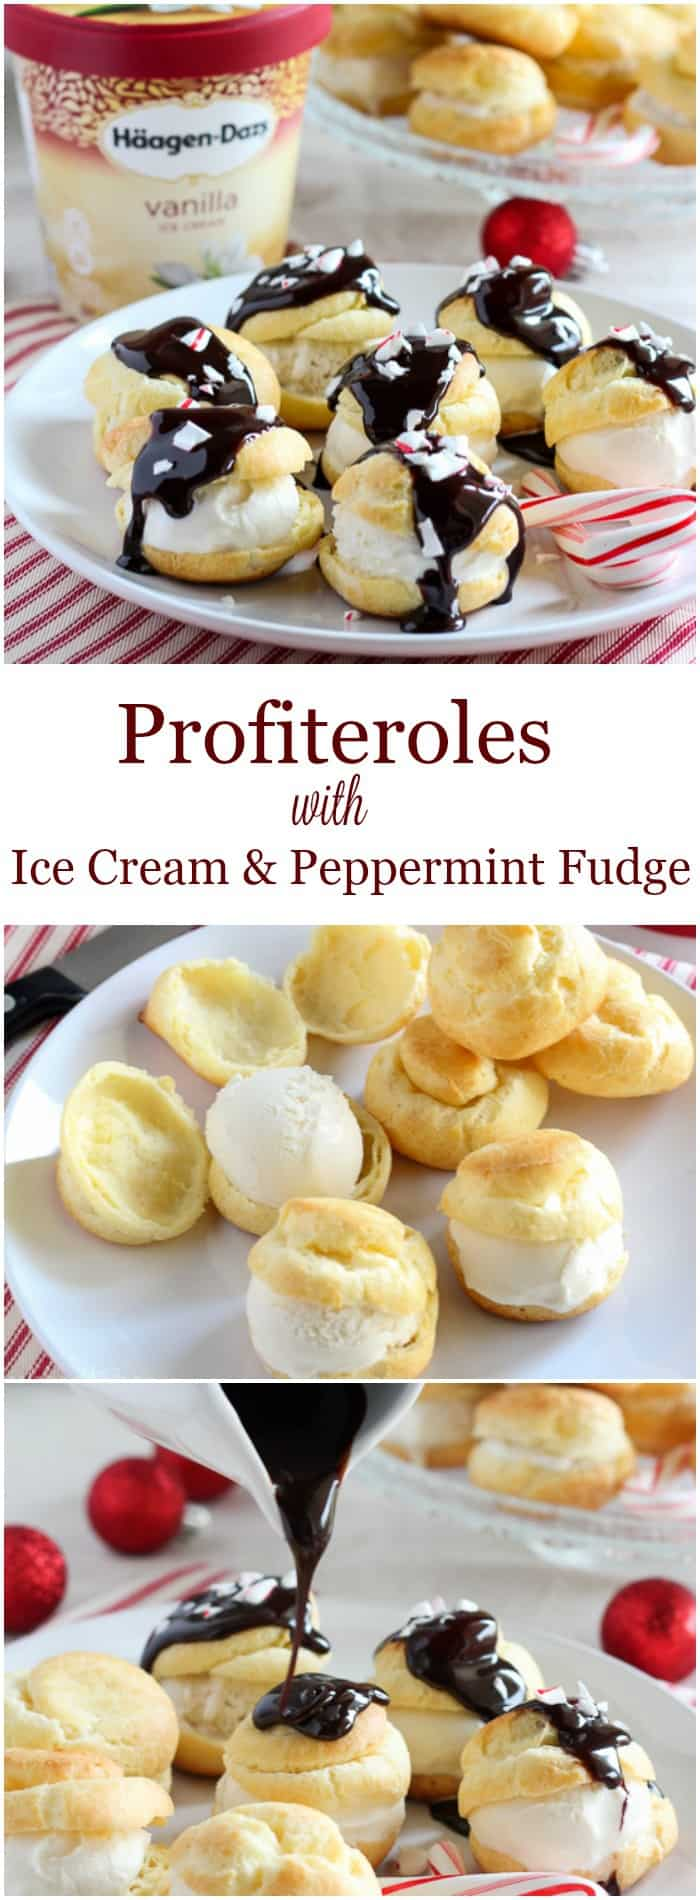 Profiteroles with Vanilla Ice Cream and Peppermint Hot Fudge. Simple pastry puffs filled with HÄAGEN-DAZS® Vanilla Ice Cream and drizzled with peppermint hot fudge. An elegant holiday dessert!